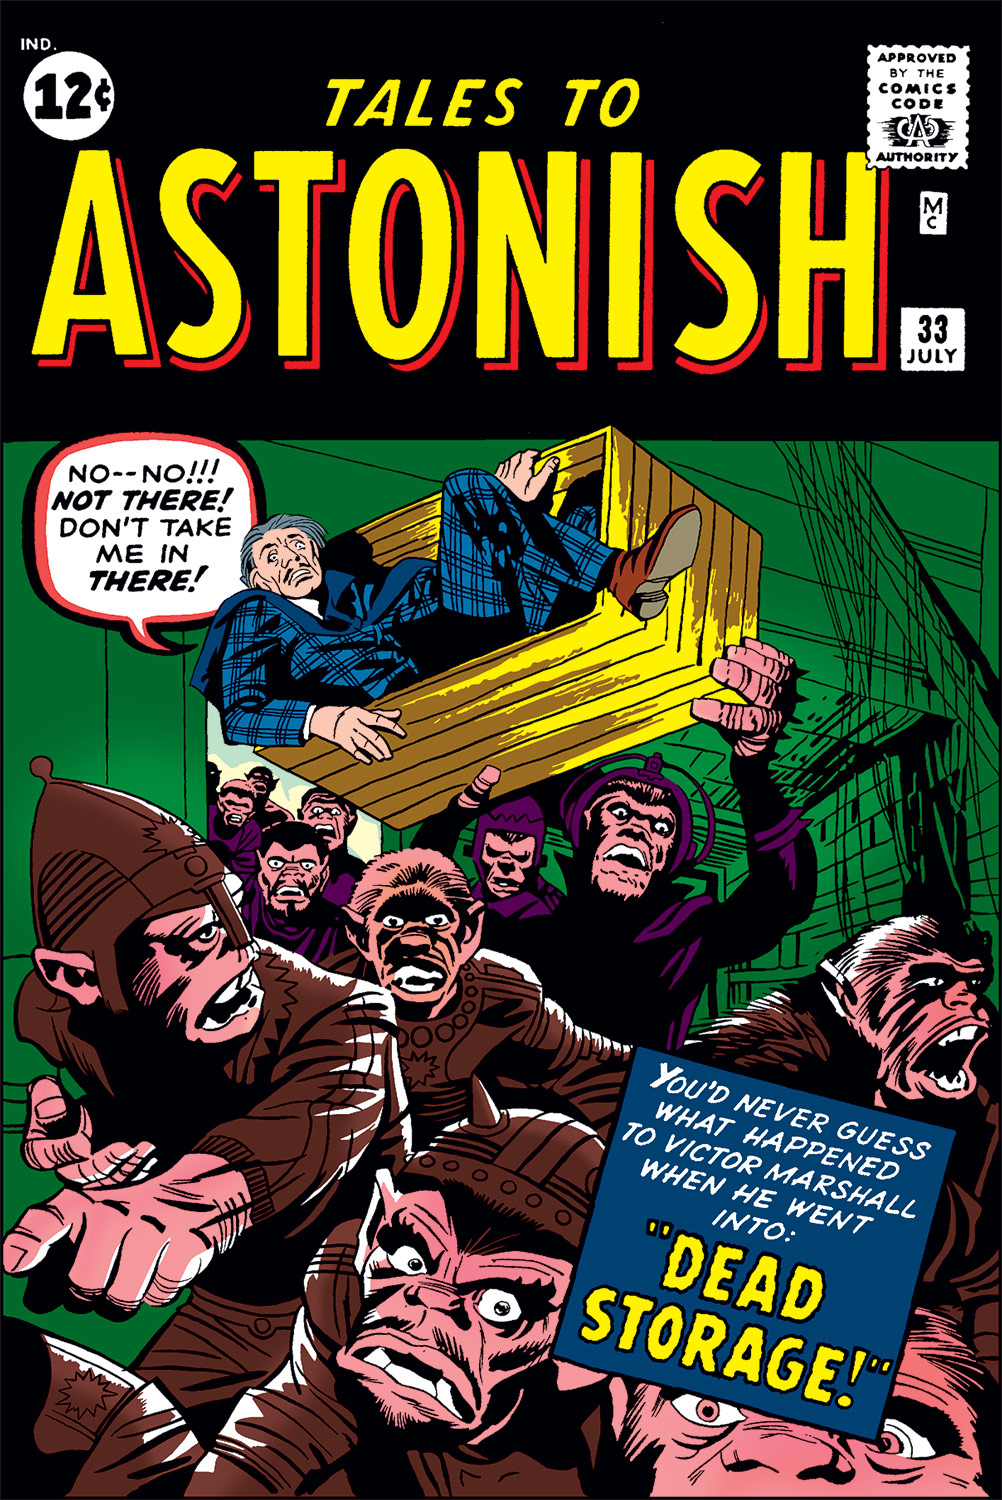 Tales to Astonish (1959) #33